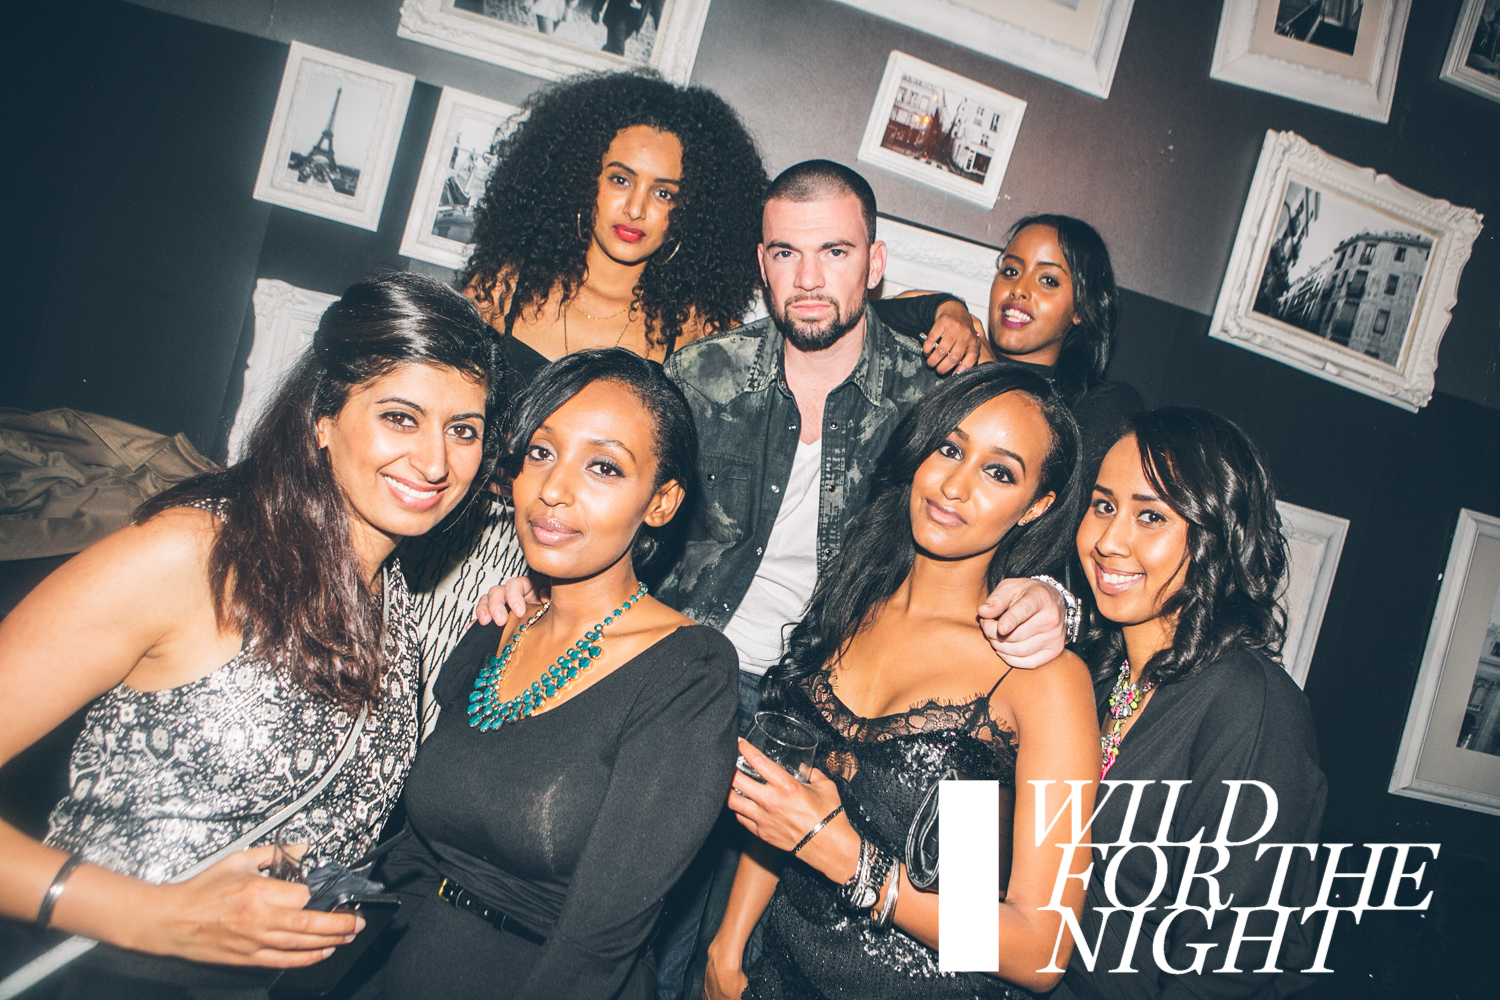 WILD FOR THE NIGHT | SATURDAY DEC 5 | STORI